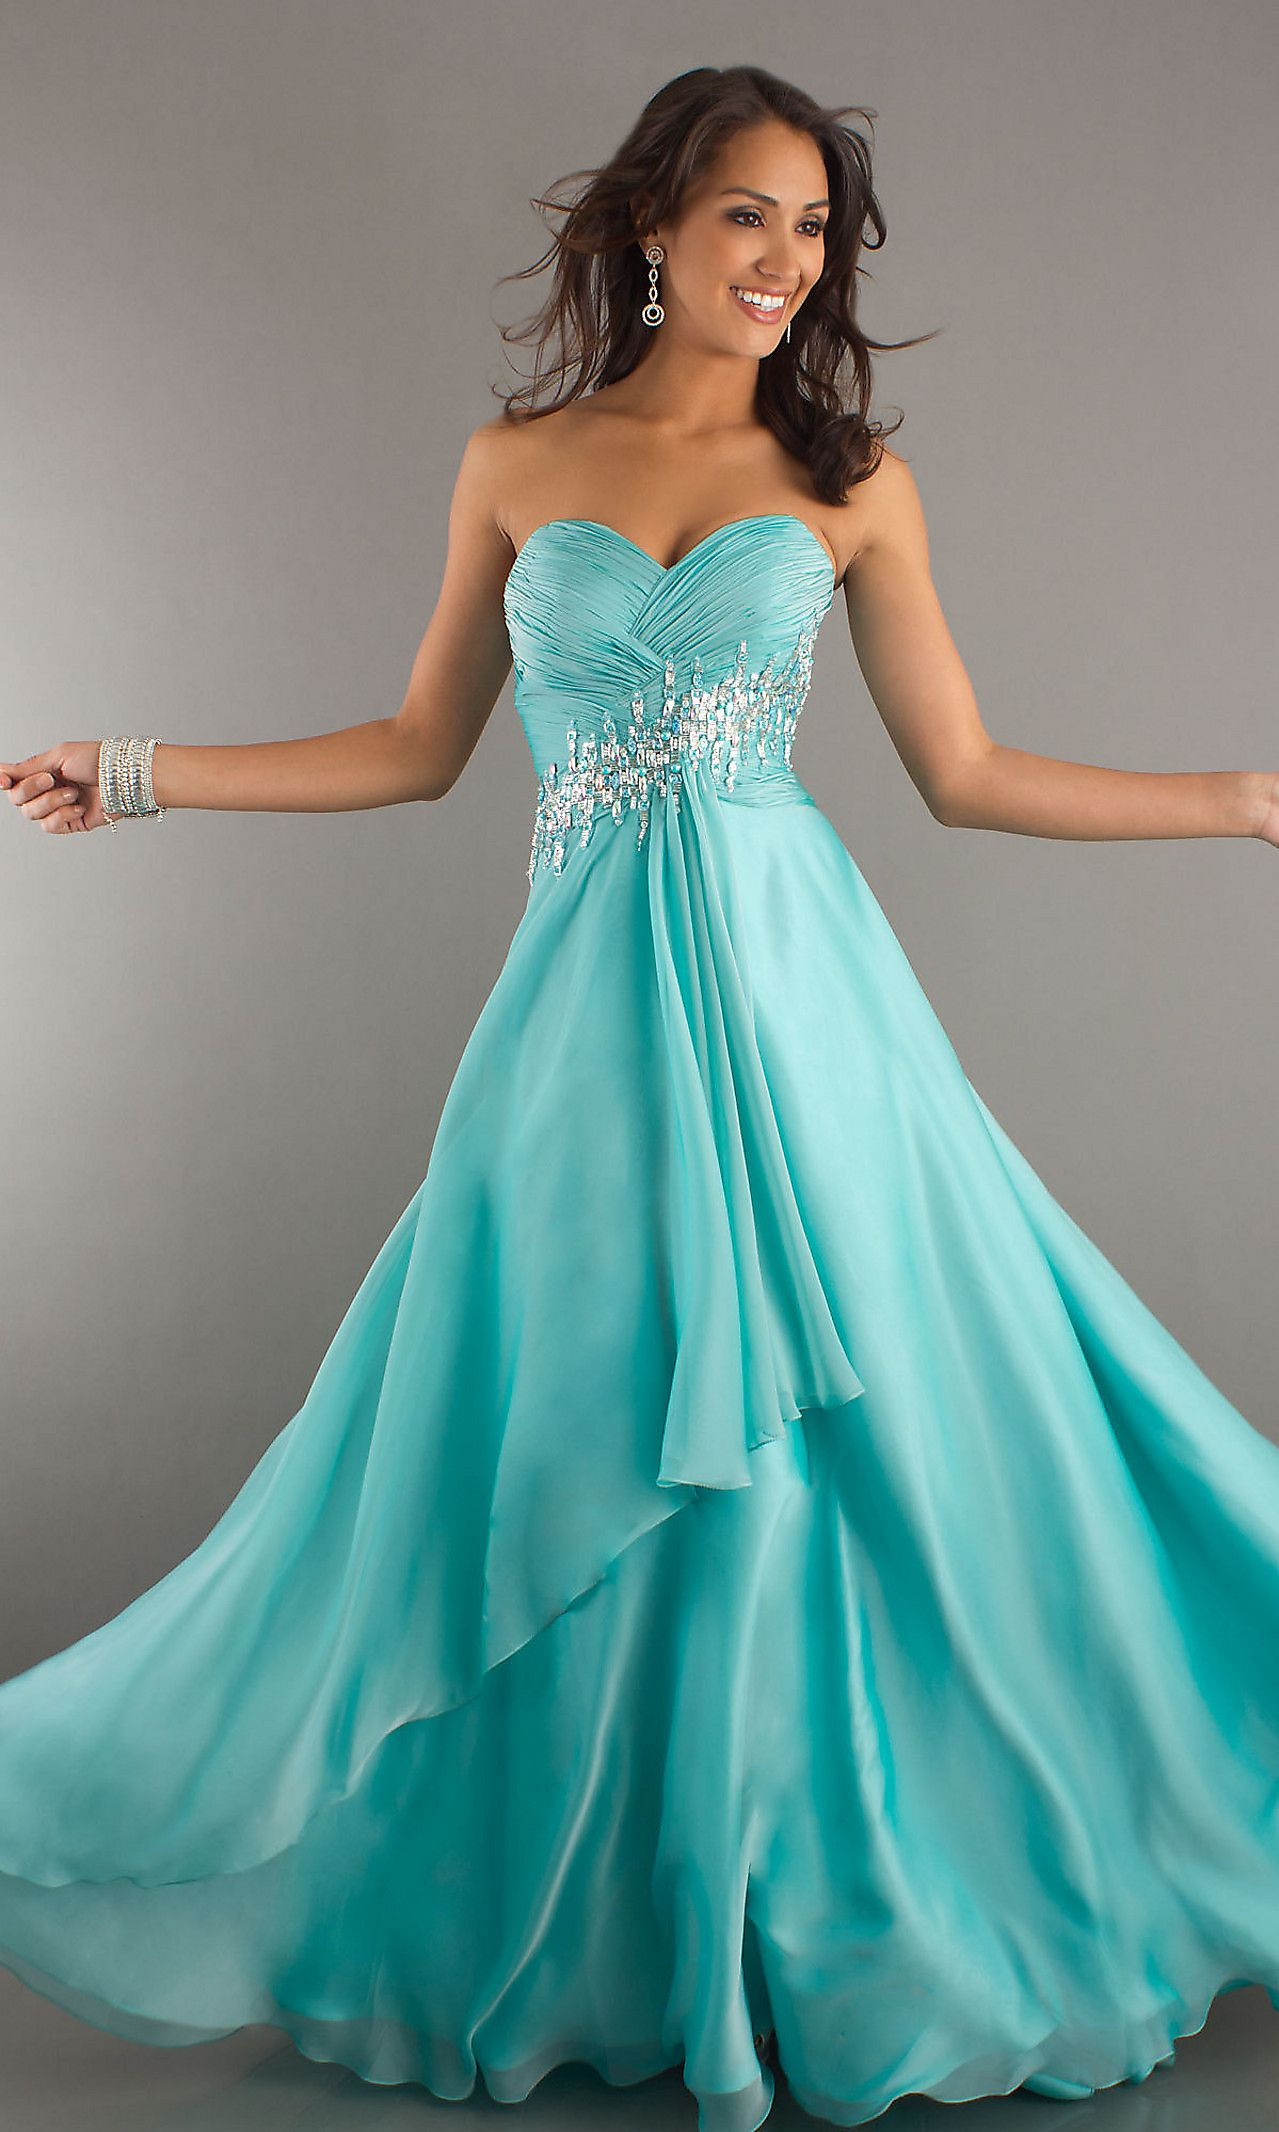 Pin by amber renee poe on prom dresses pinterest sweetheart